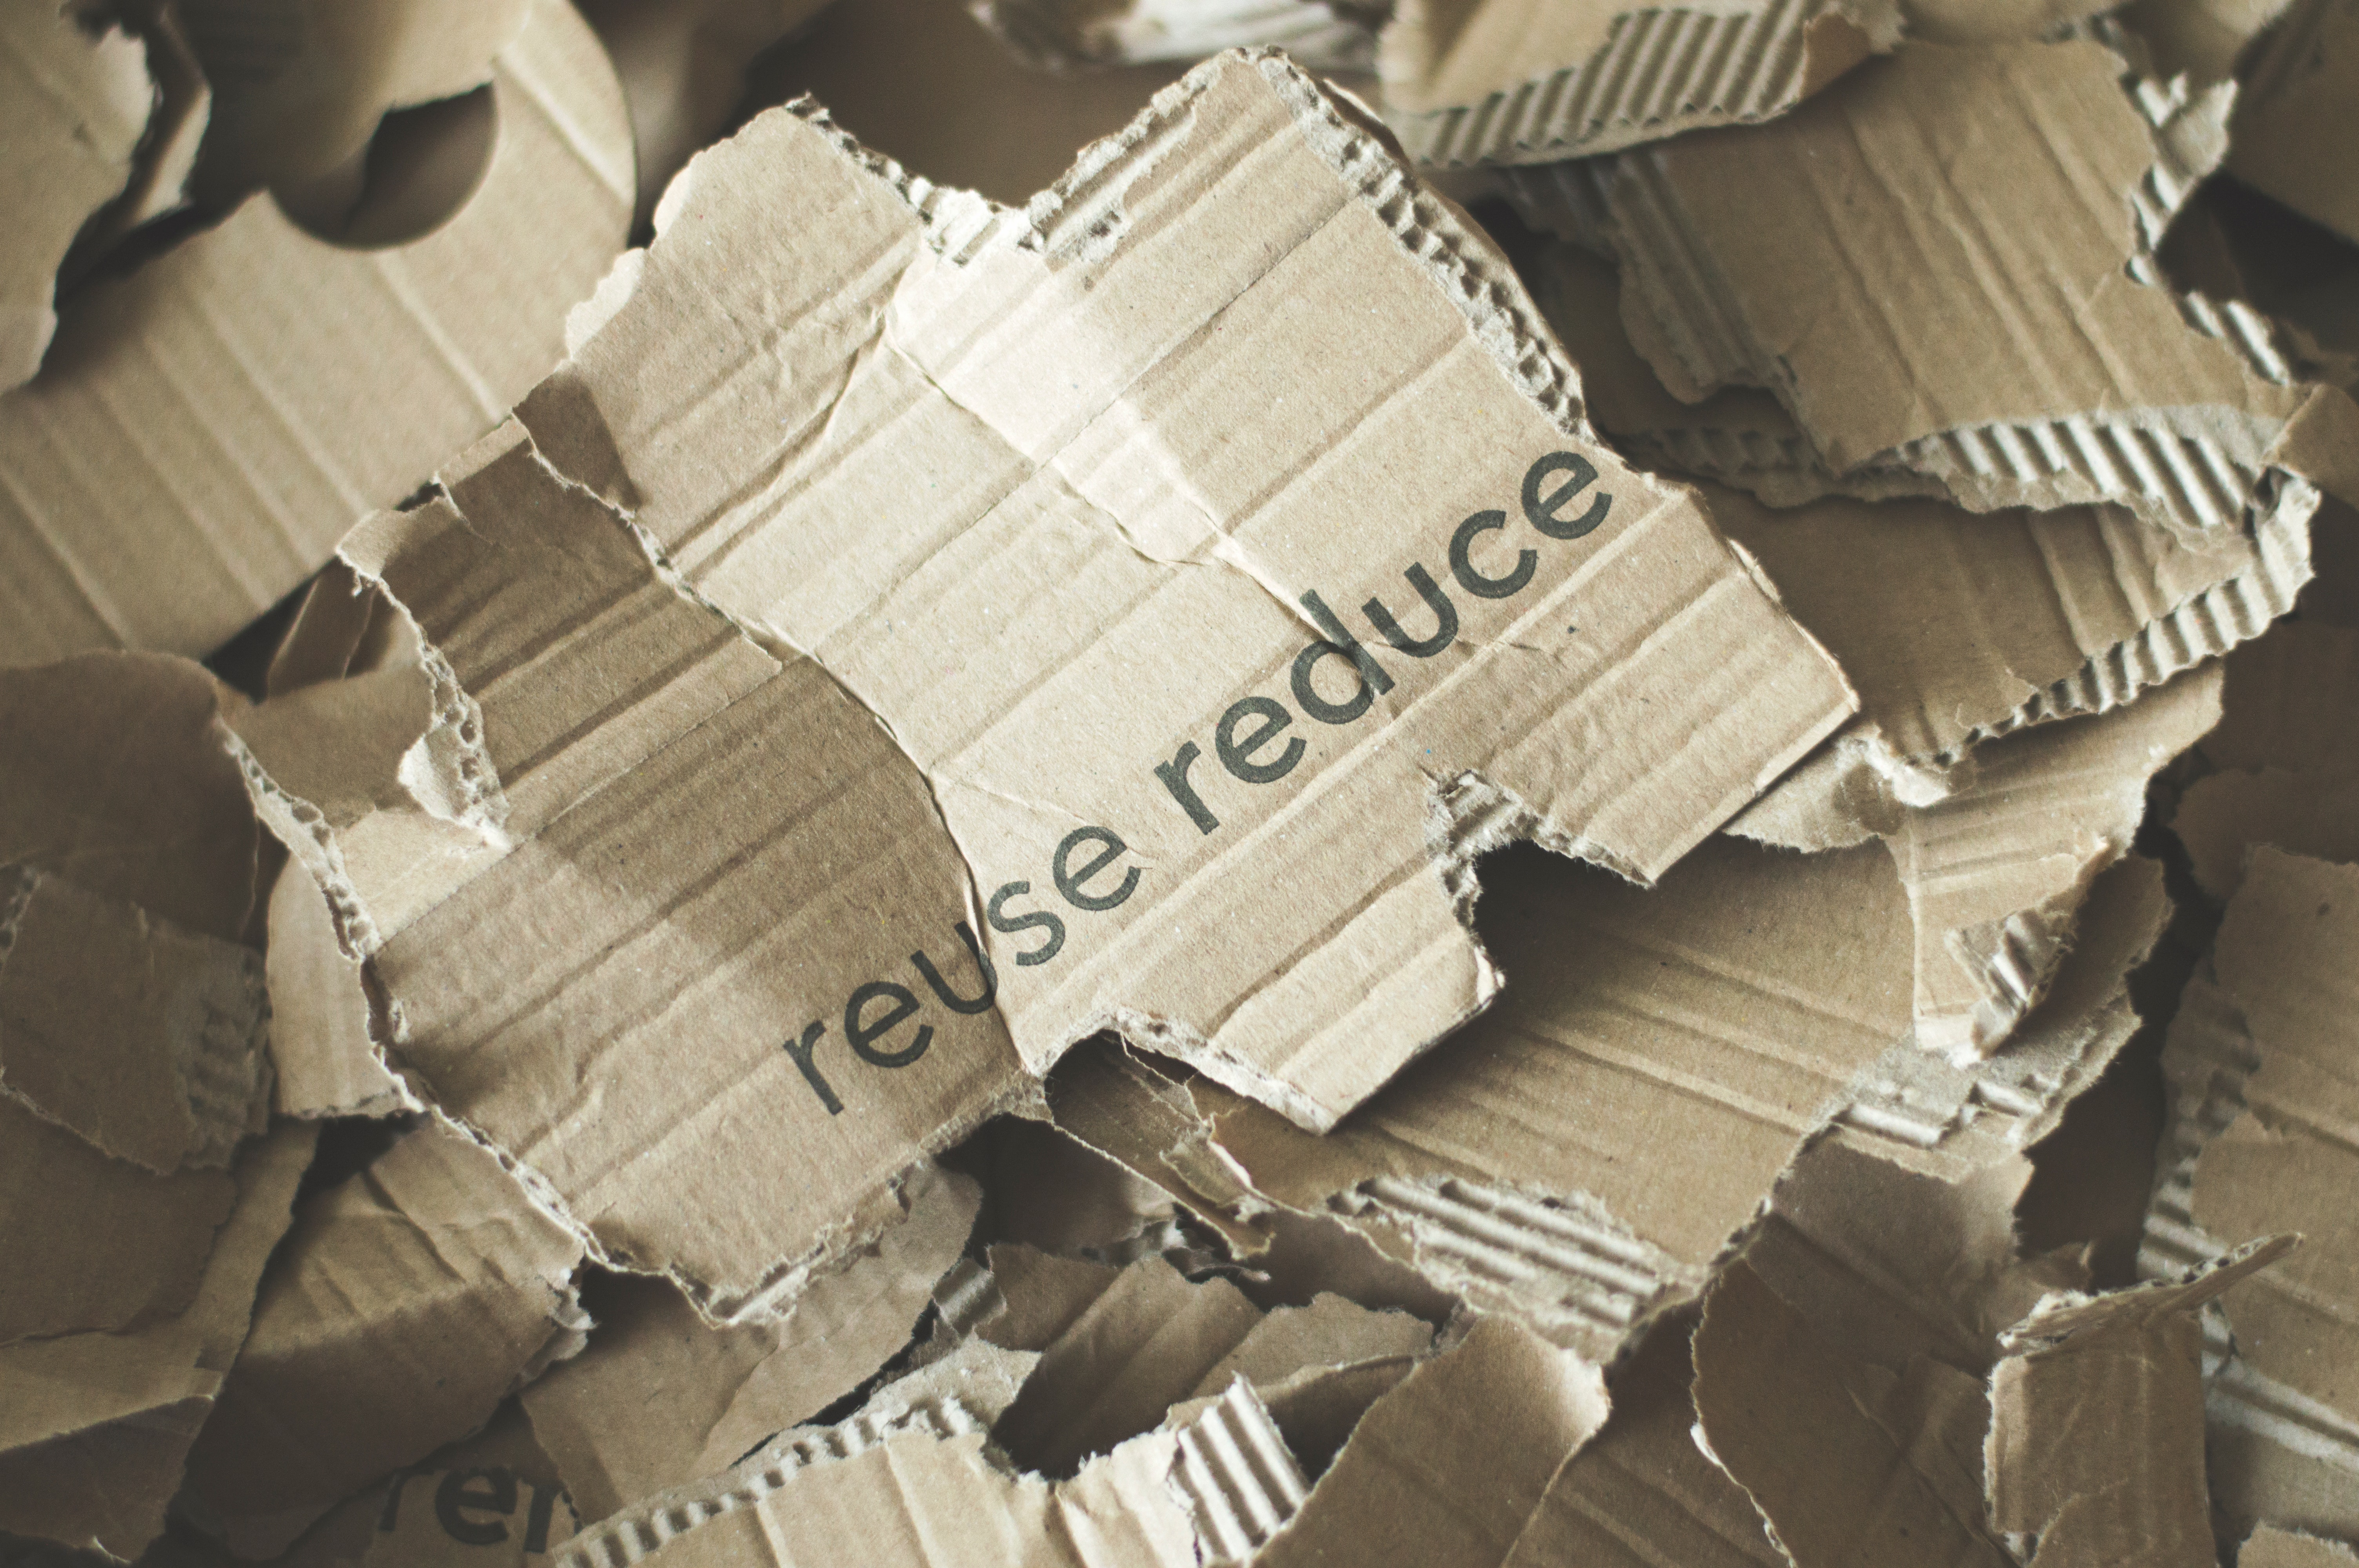 reduce reuse recycle packaging